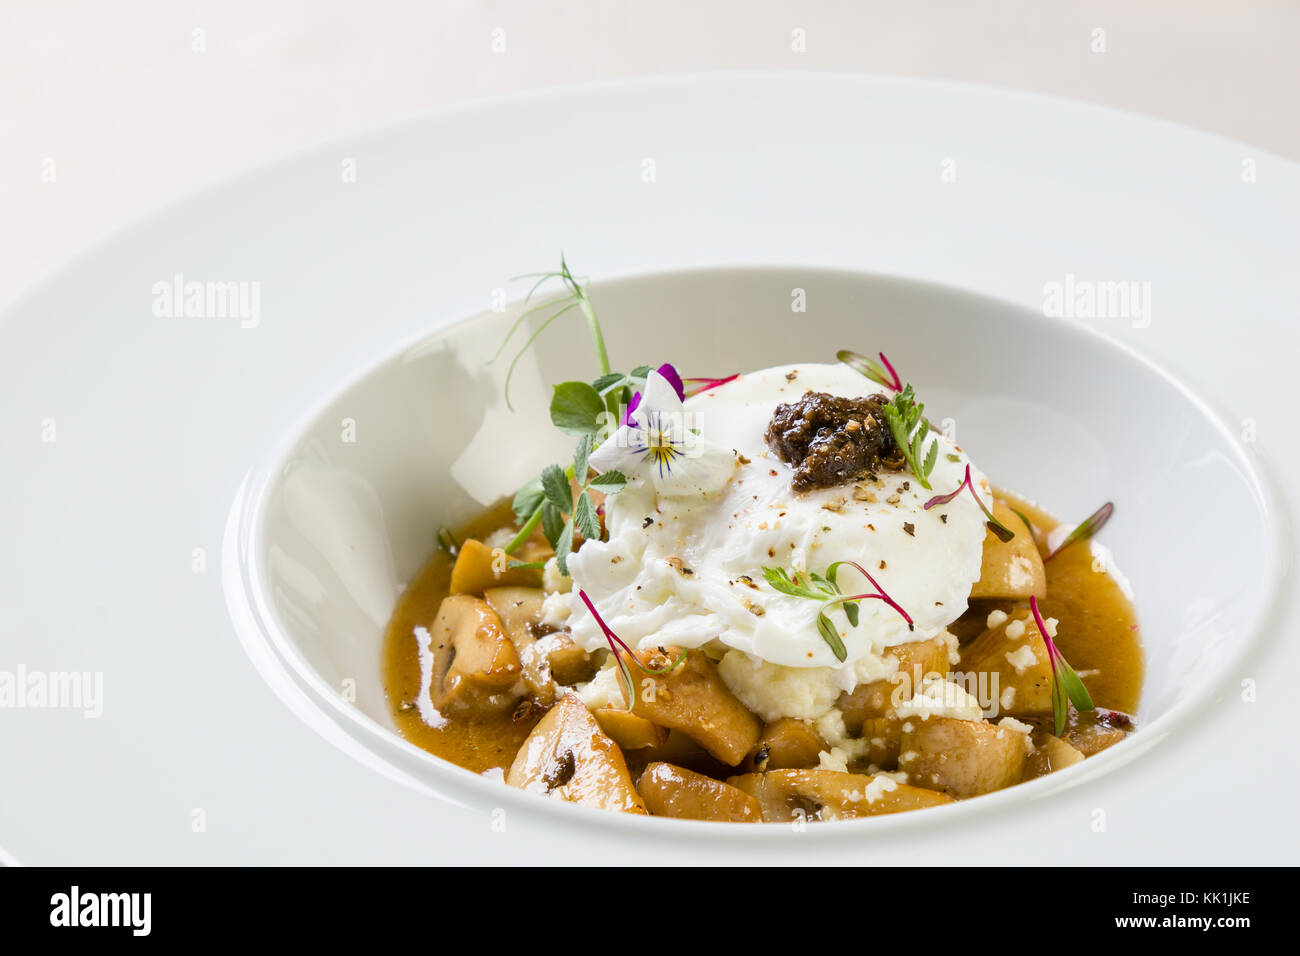 mix of mushrooms with poached egg in white plate - Stock Image